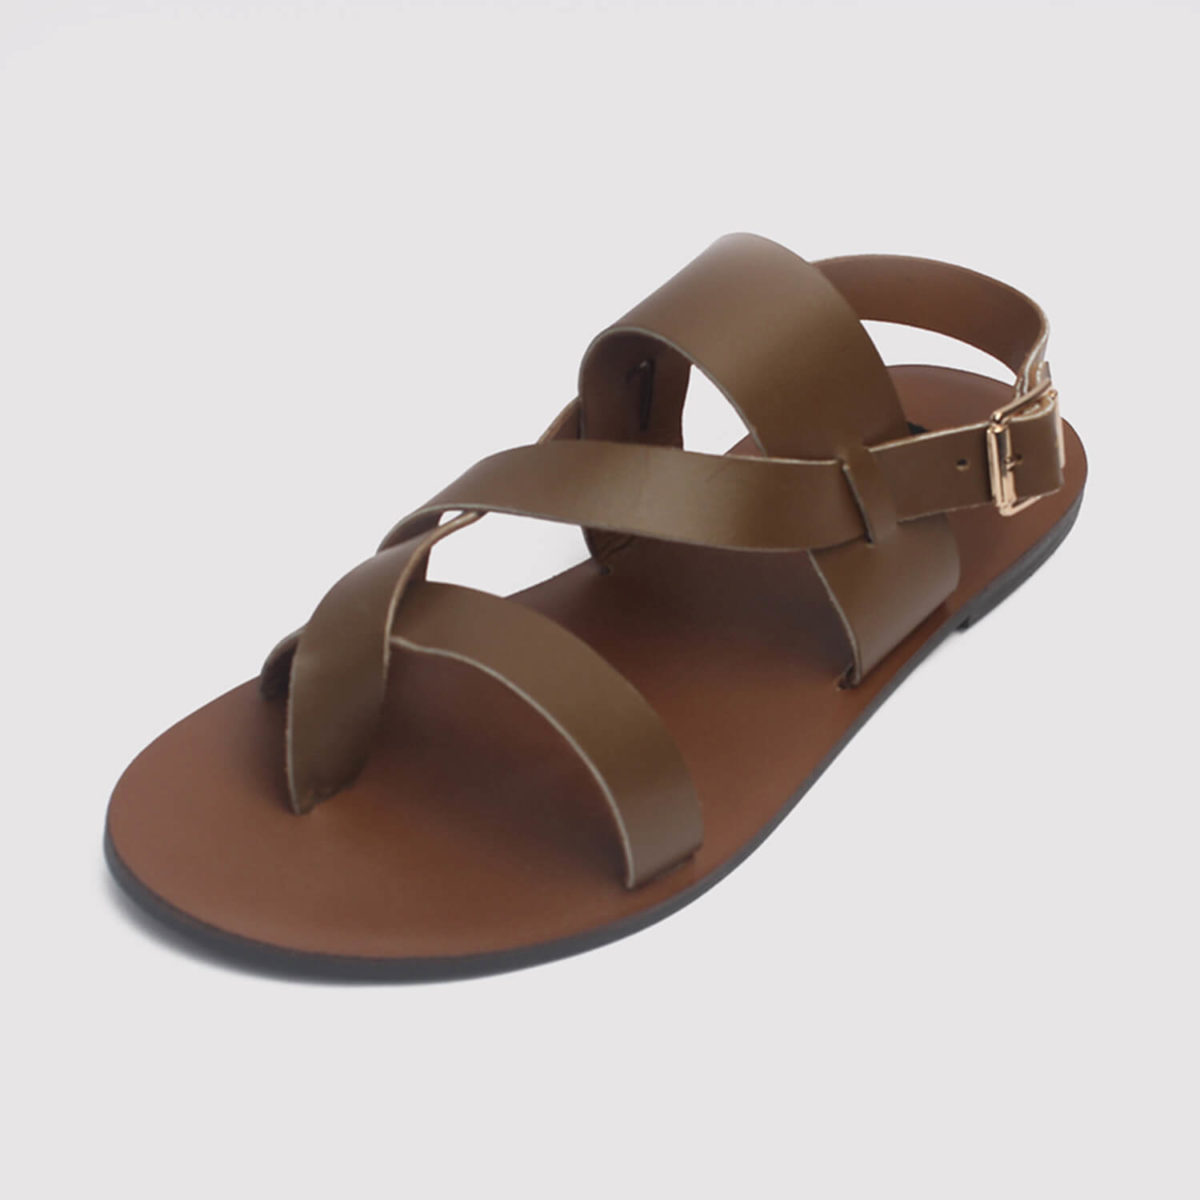 kuti sandals brown leather by zorkle shoes lagos nigeria